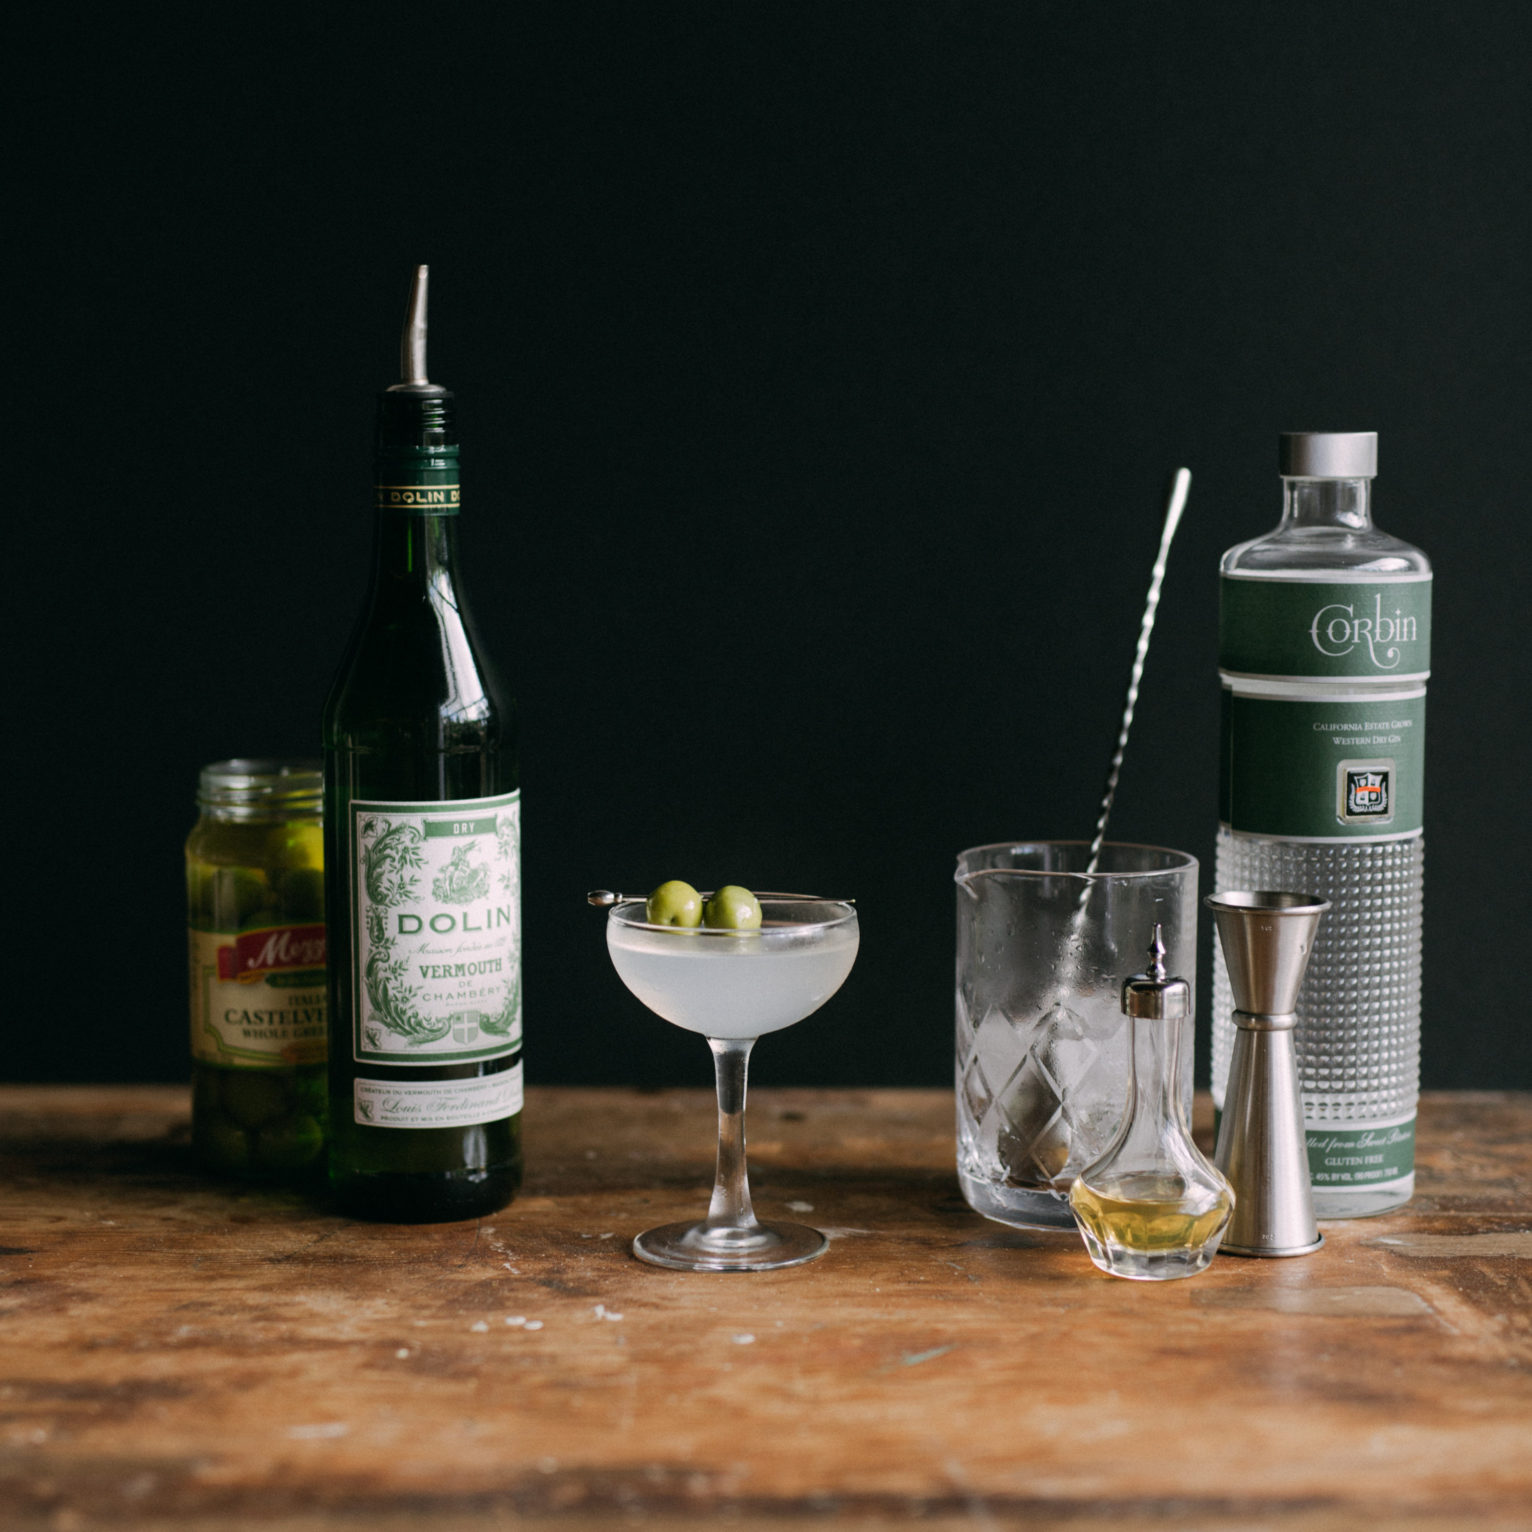 Dolin Dry Vermouth, Martini Glass, Bitters Bottle, Jigger, Corbin Gin